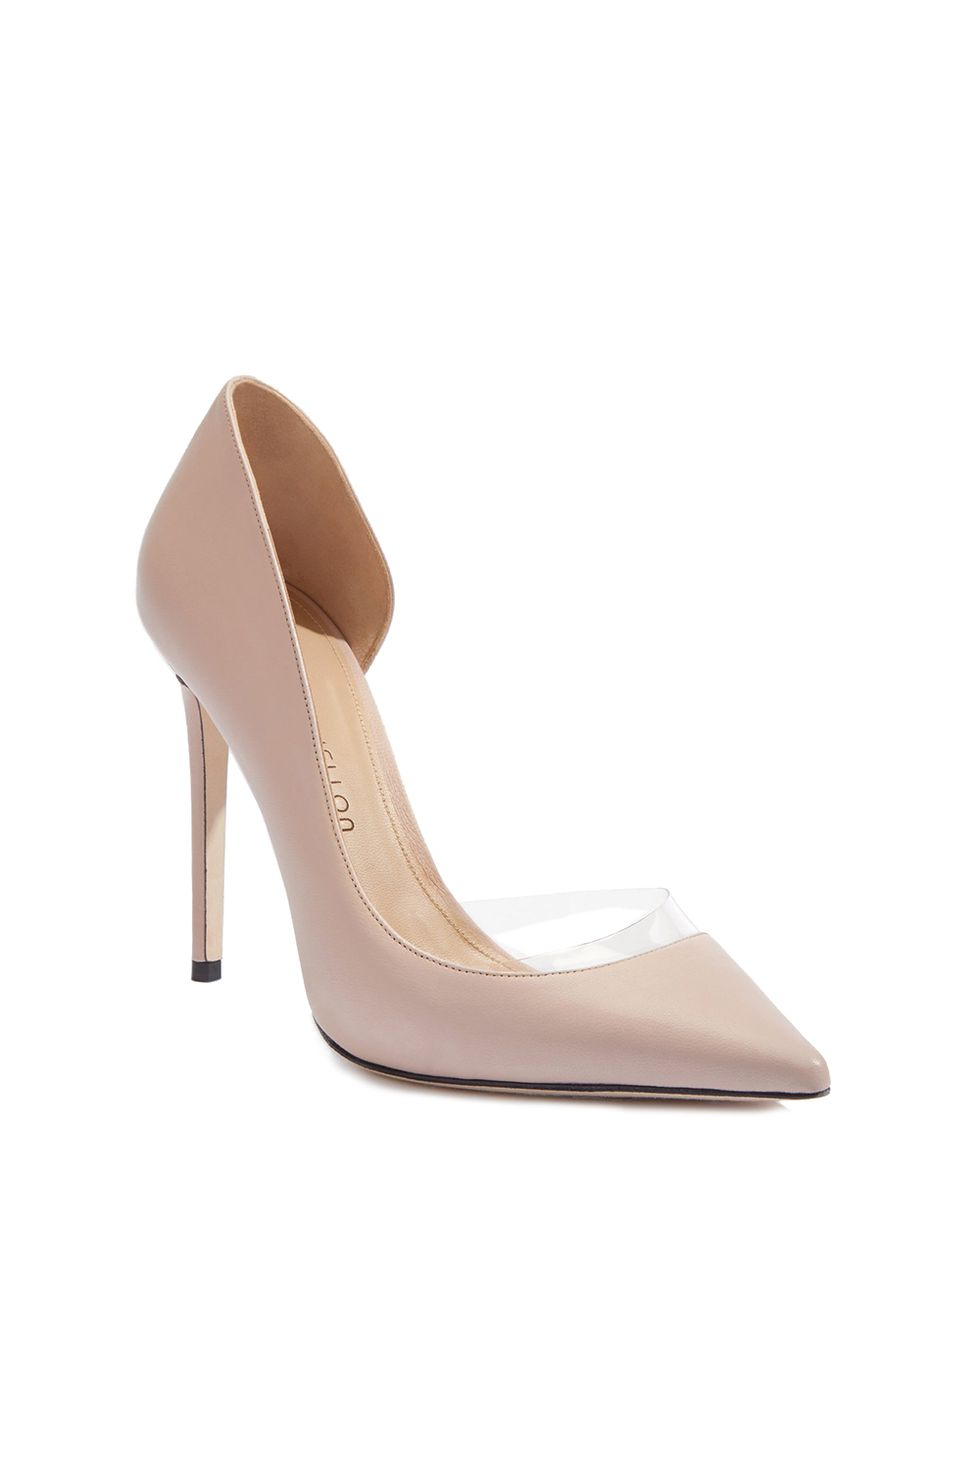 Tamara Mellon Pumps-Meghan Markle